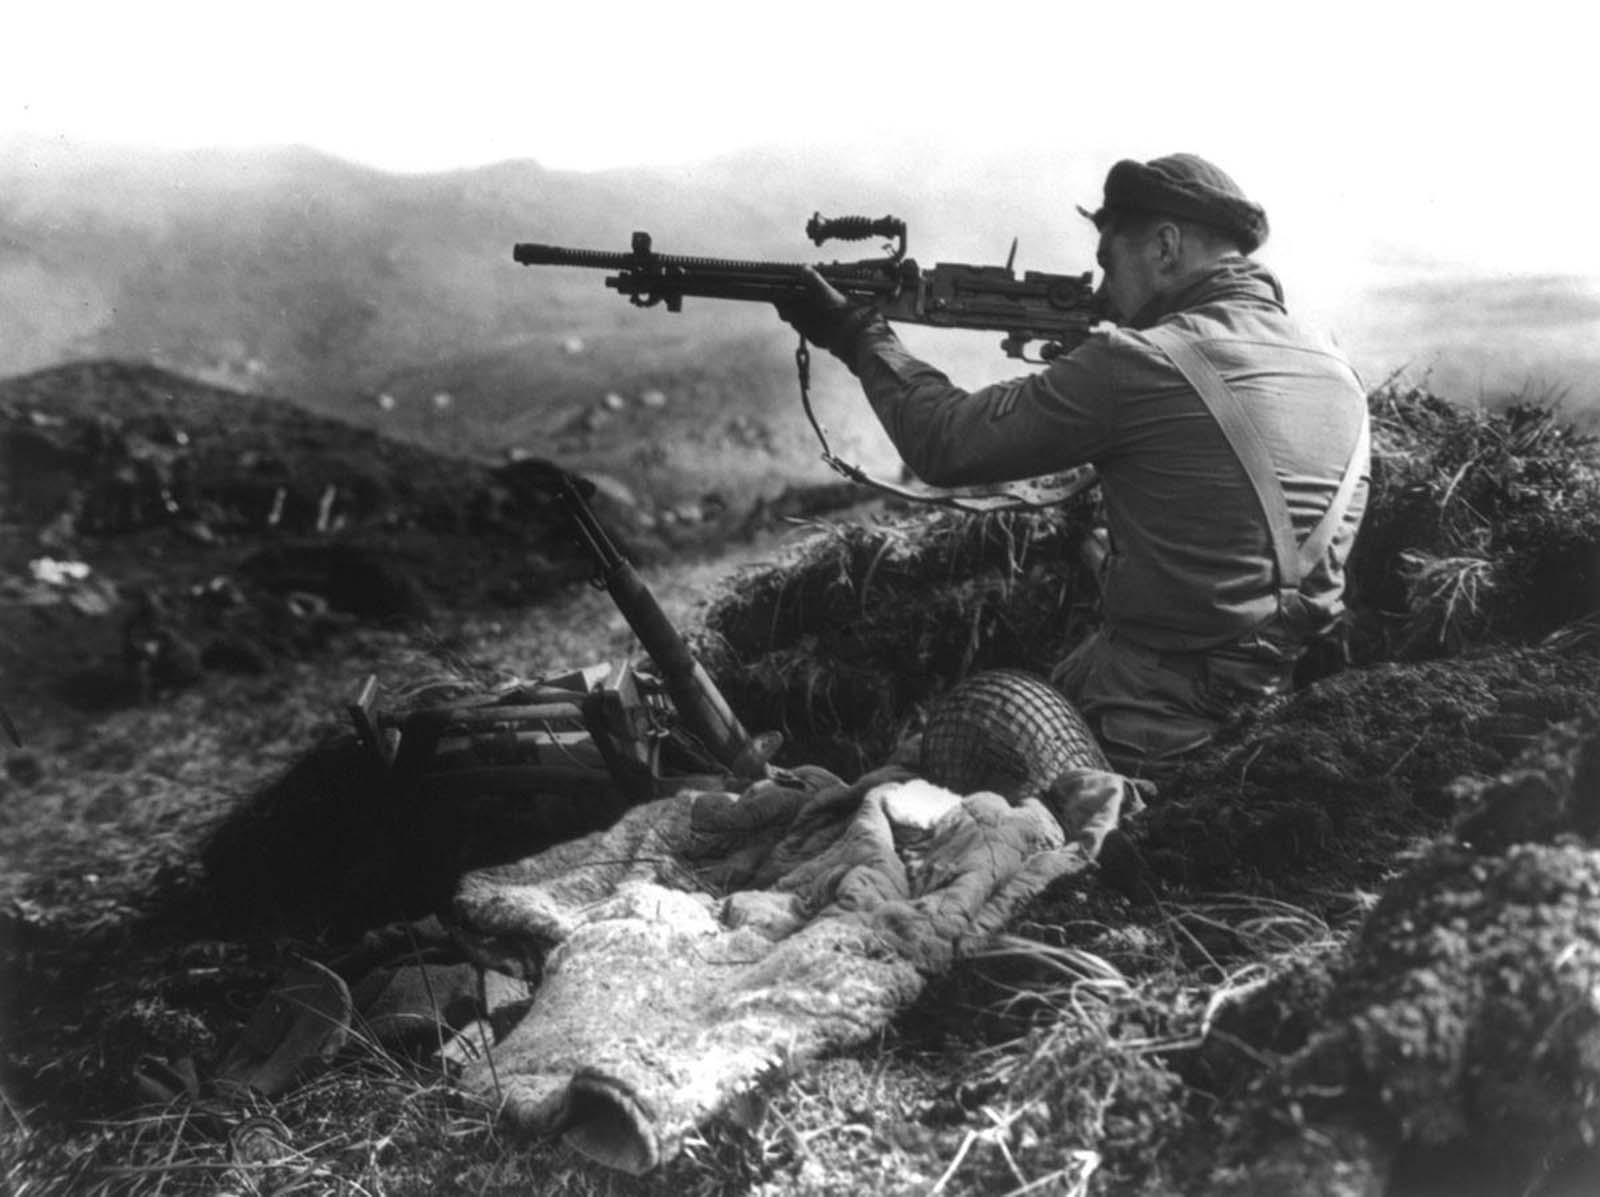 A Canadian member of the joint American-Canadian landing force squints down the sights of a Japanese machine gun found in a trench on Kiska Island, Alaska, on August 16, 1943. After the brutal fighting in the battle to retake Attu Island, U.S. and Canadian forces were prepared for even more of a fight on Kiska. Unknown to the Allies though, the Japanese had evacuated all their troops two weeks earlier. Although the invasion was unopposed, 32 soldiers were killed in friendly-fire incidents, four more by booby traps, and a further 191 were listed as Missing in Action.